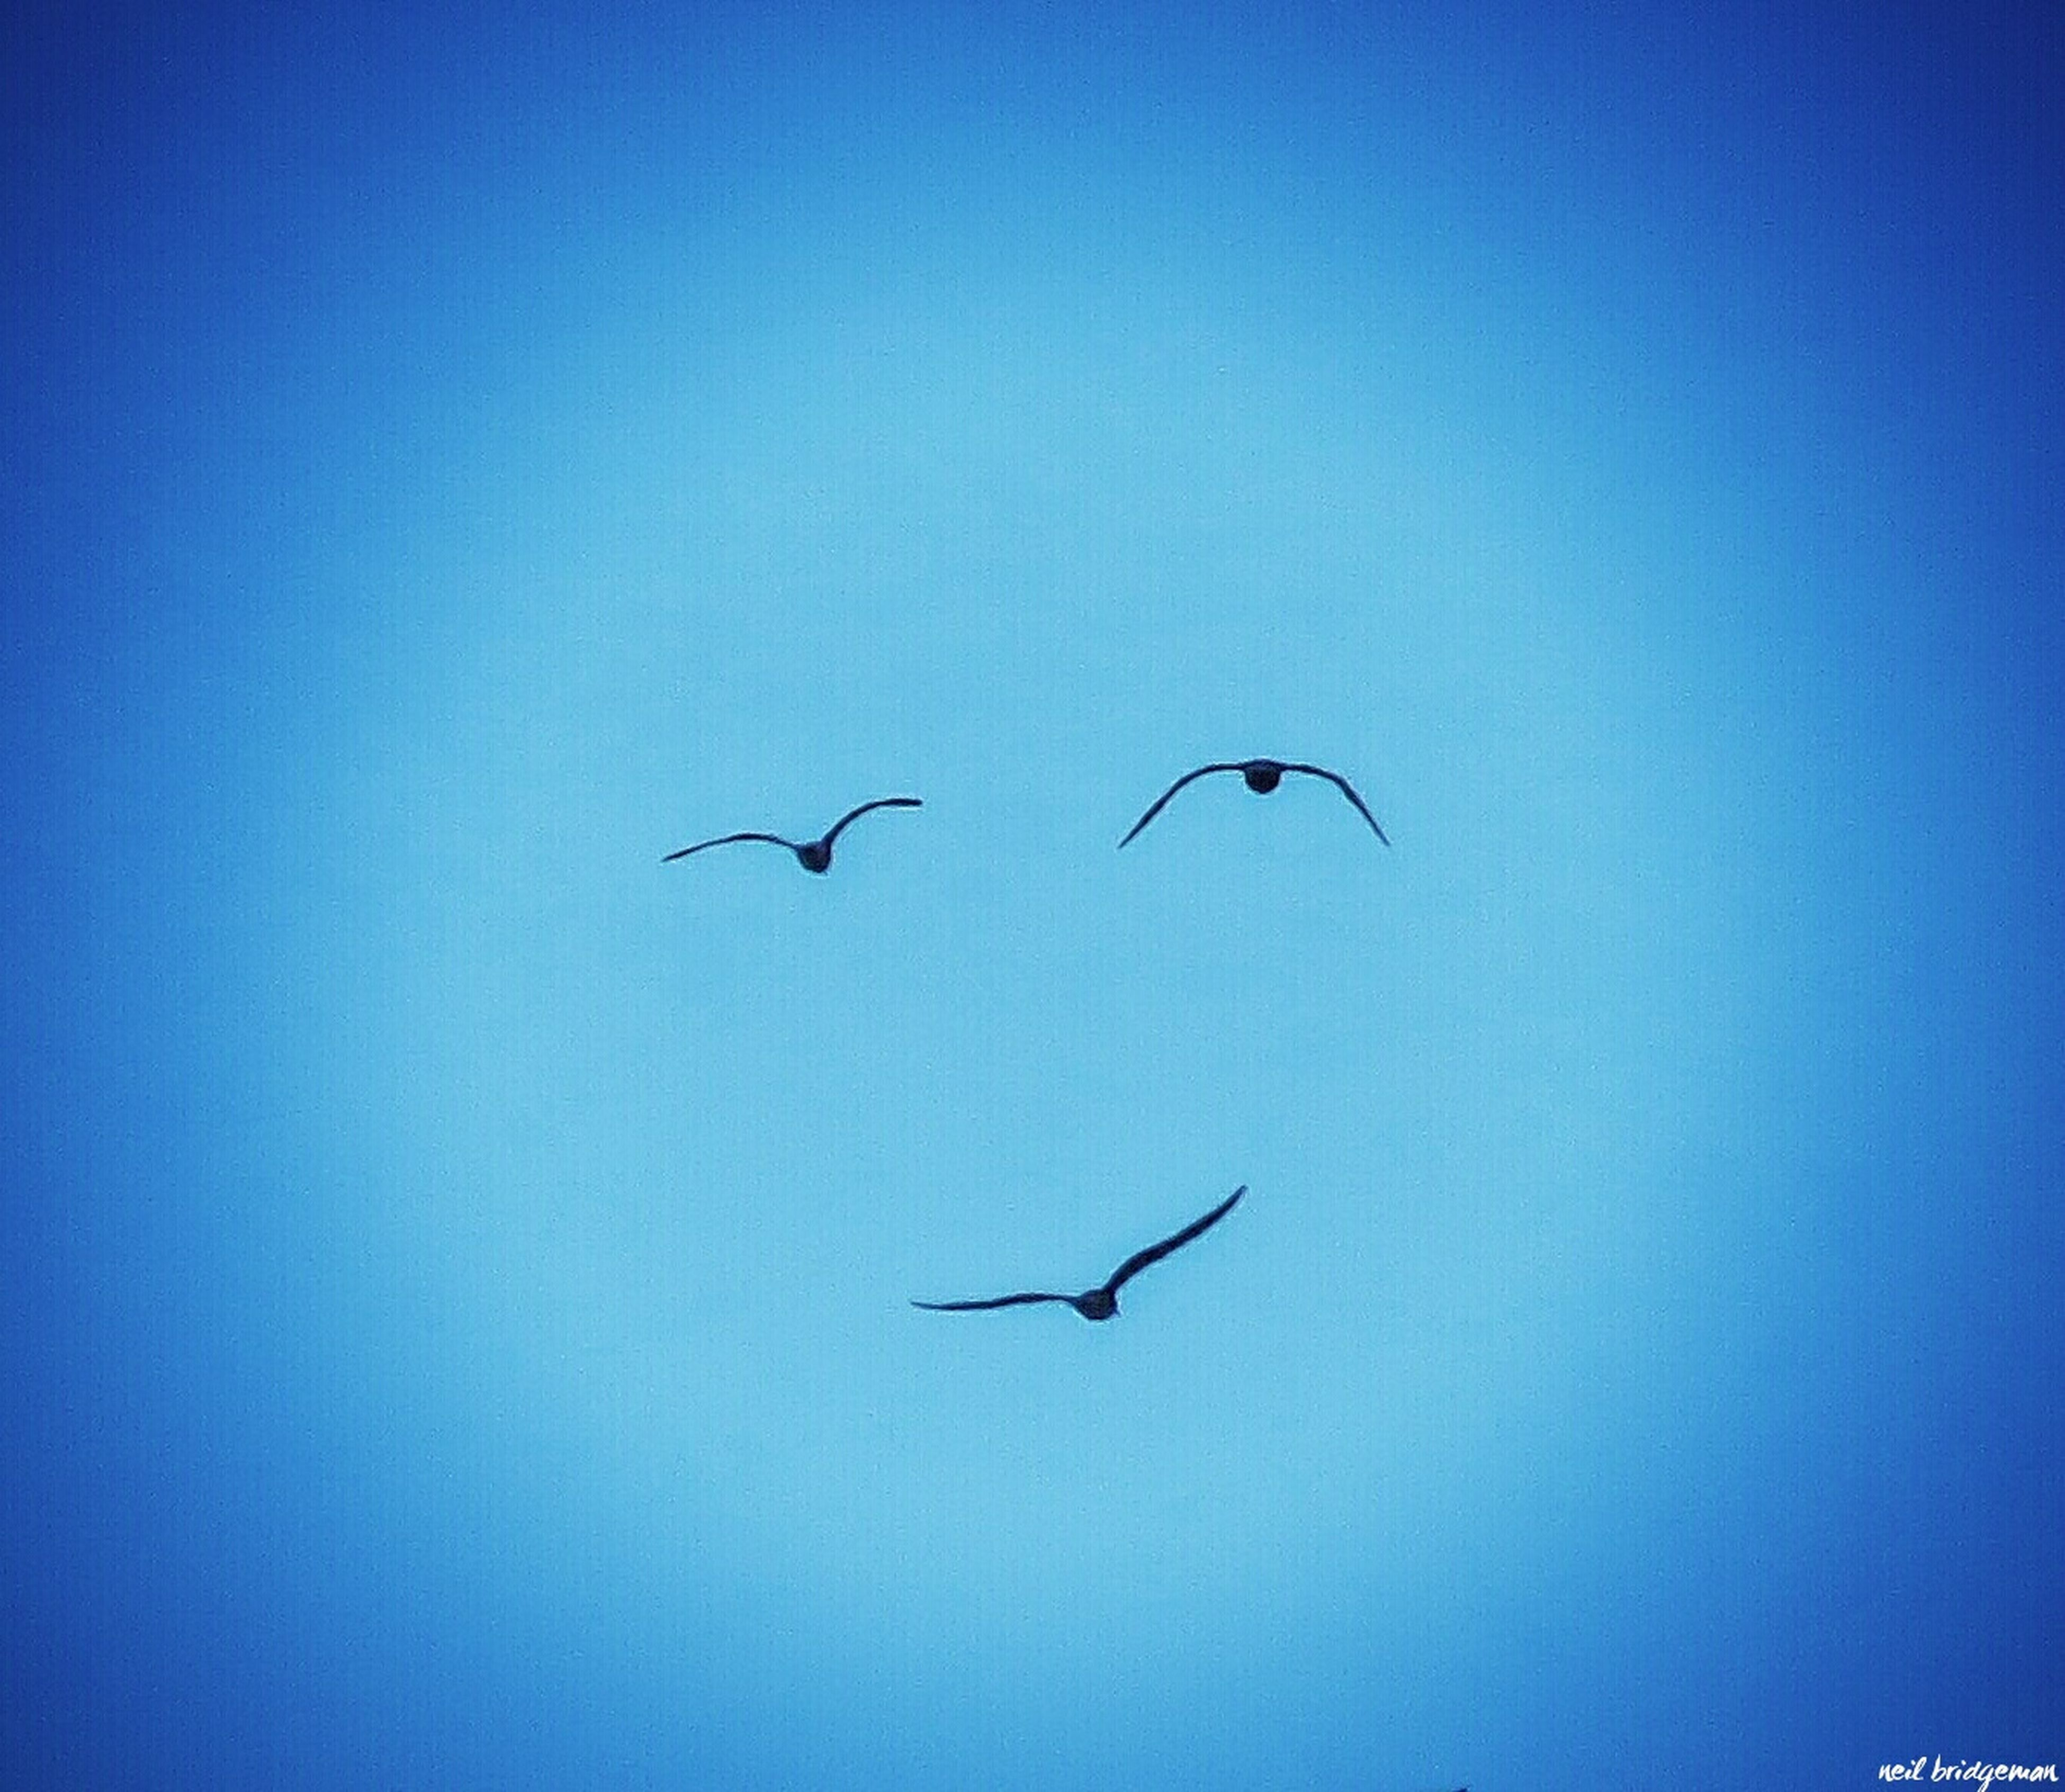 flying, bird, animals in the wild, animal themes, low angle view, blue, clear sky, copy space, mid-air, day, nature, no people, spread wings, animal wildlife, outdoors, beauty in nature, sky